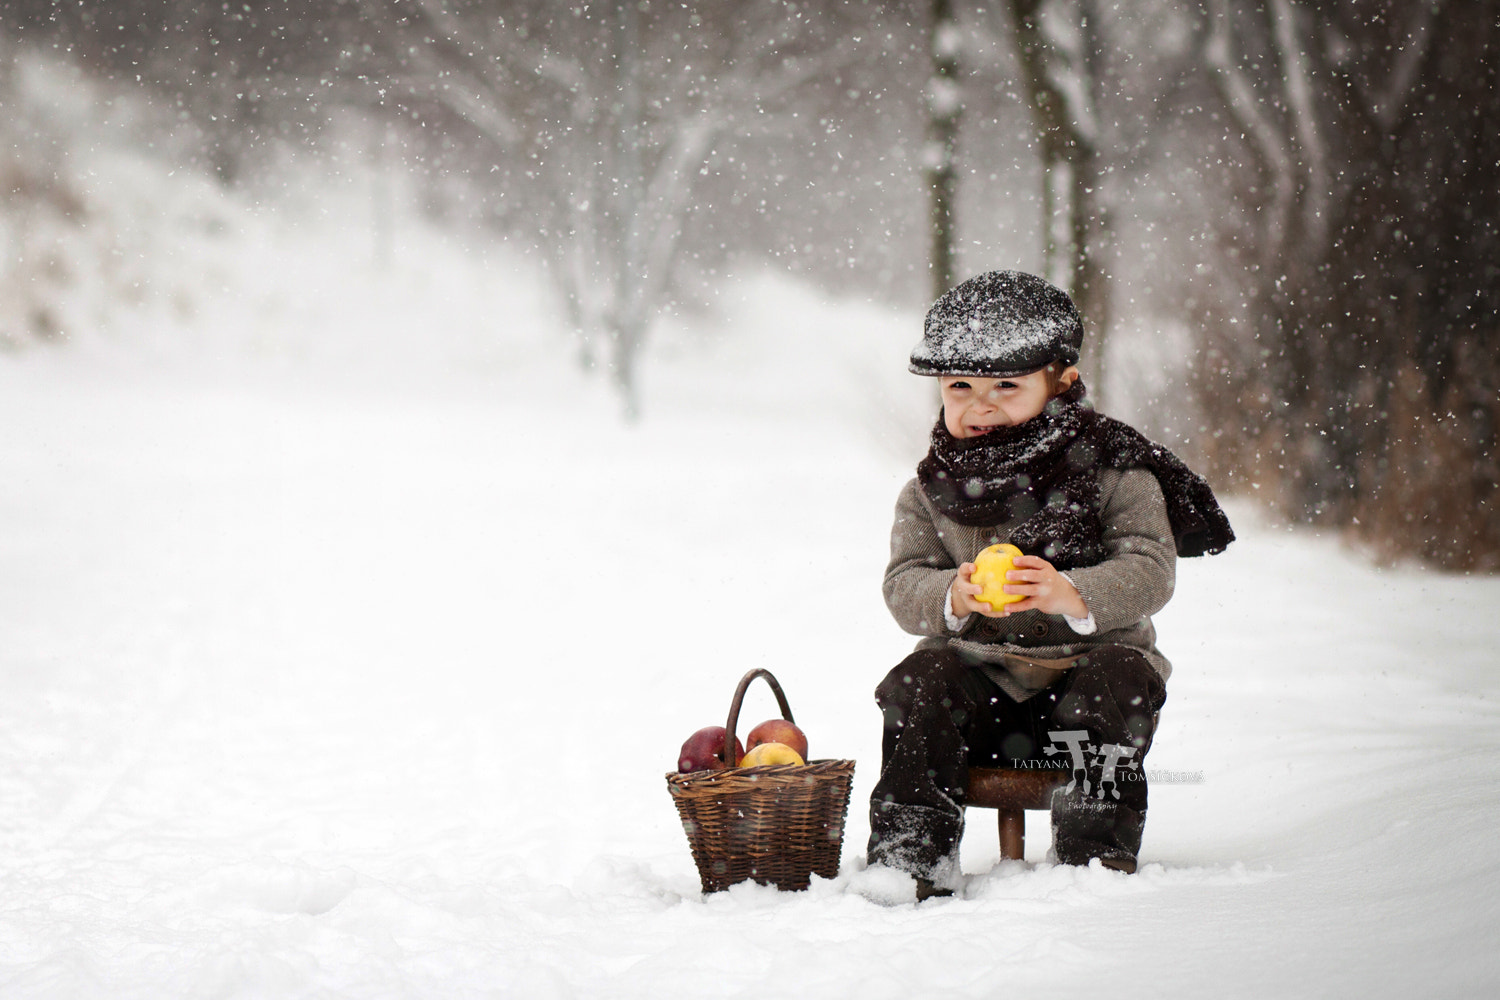 Photograph The little apple seller by Tatyana Tomsickova on 500px